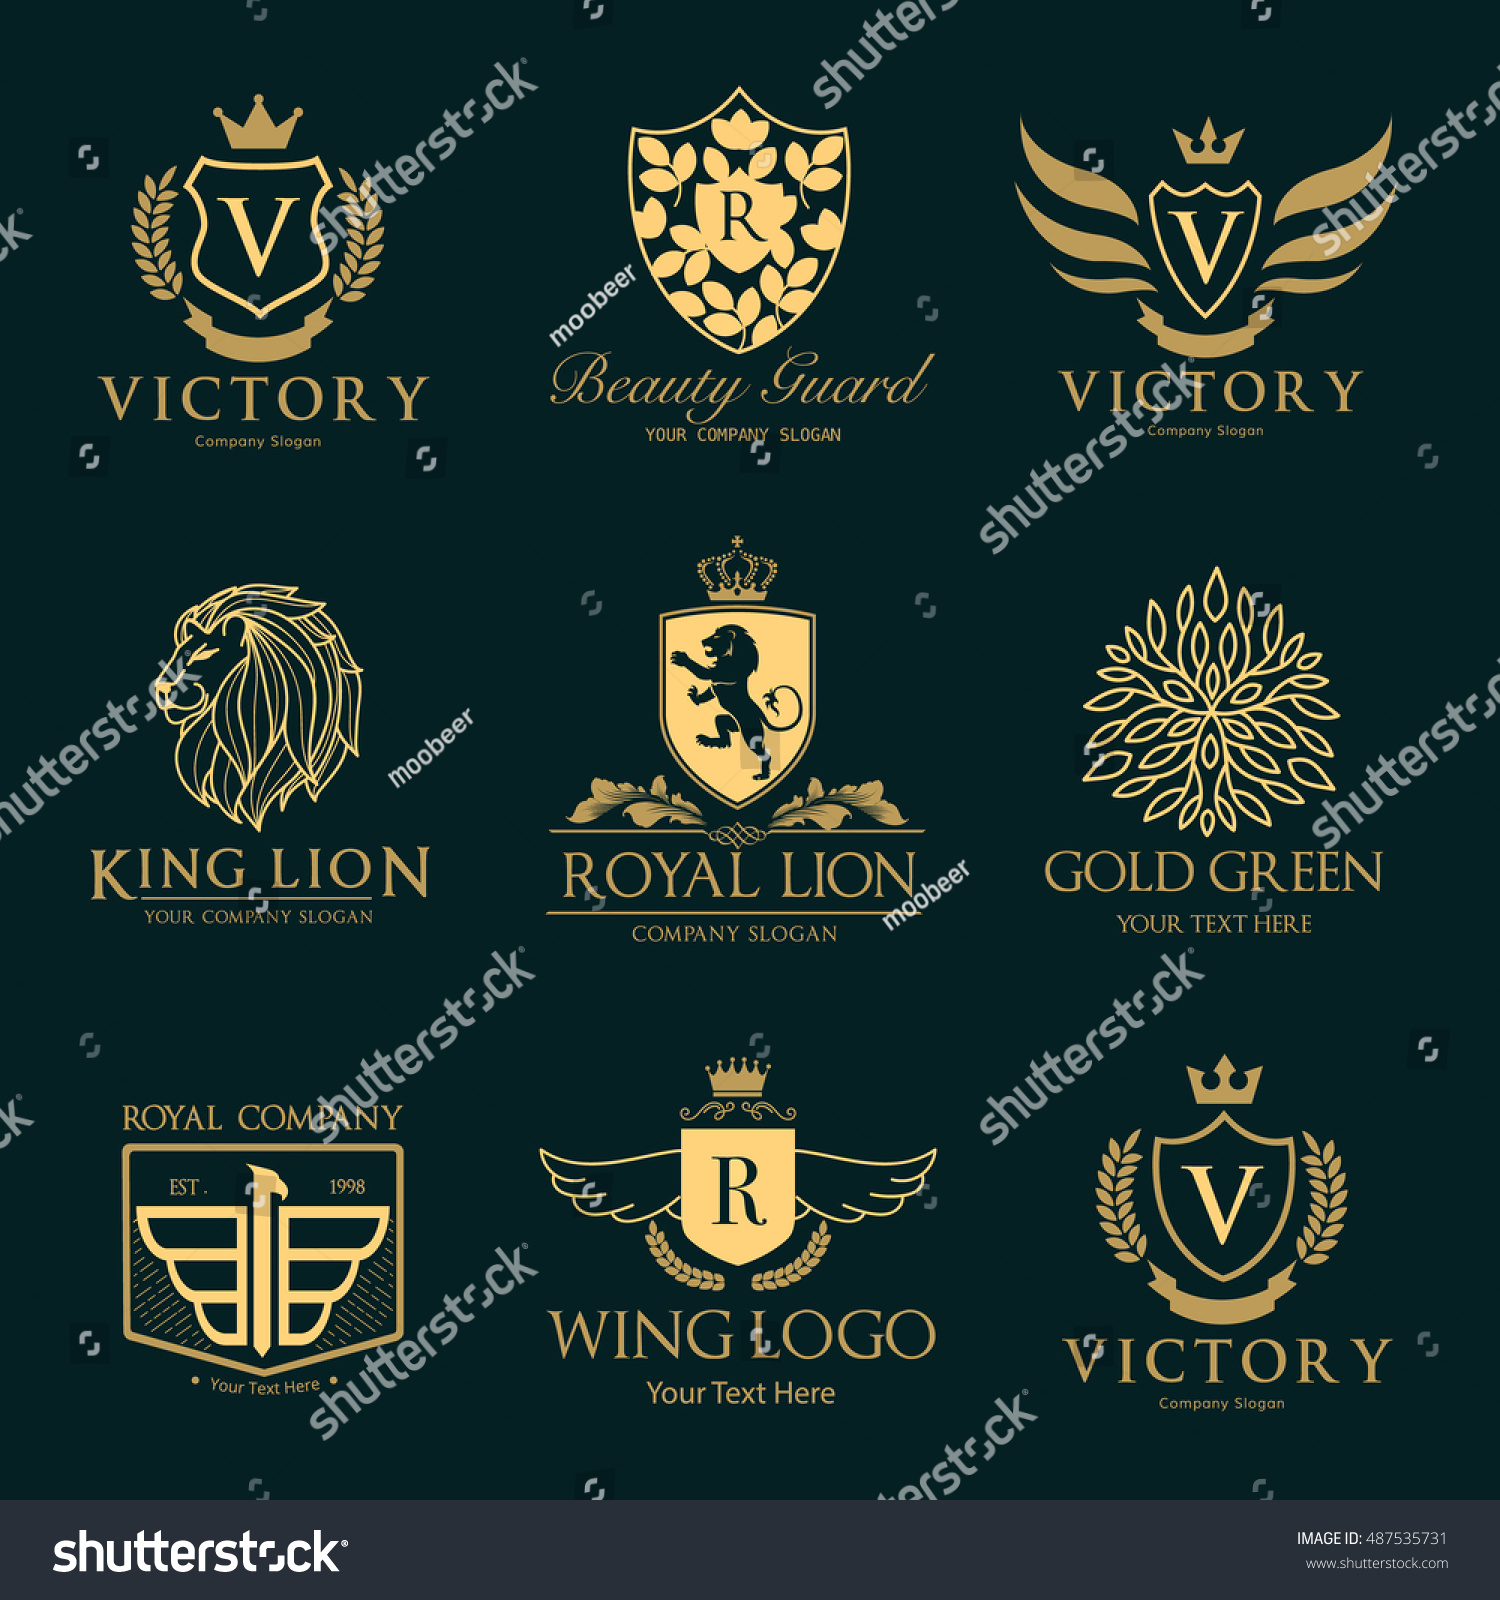 Luxury hotel logo collection victory logo stock vector for Luxury hotel company